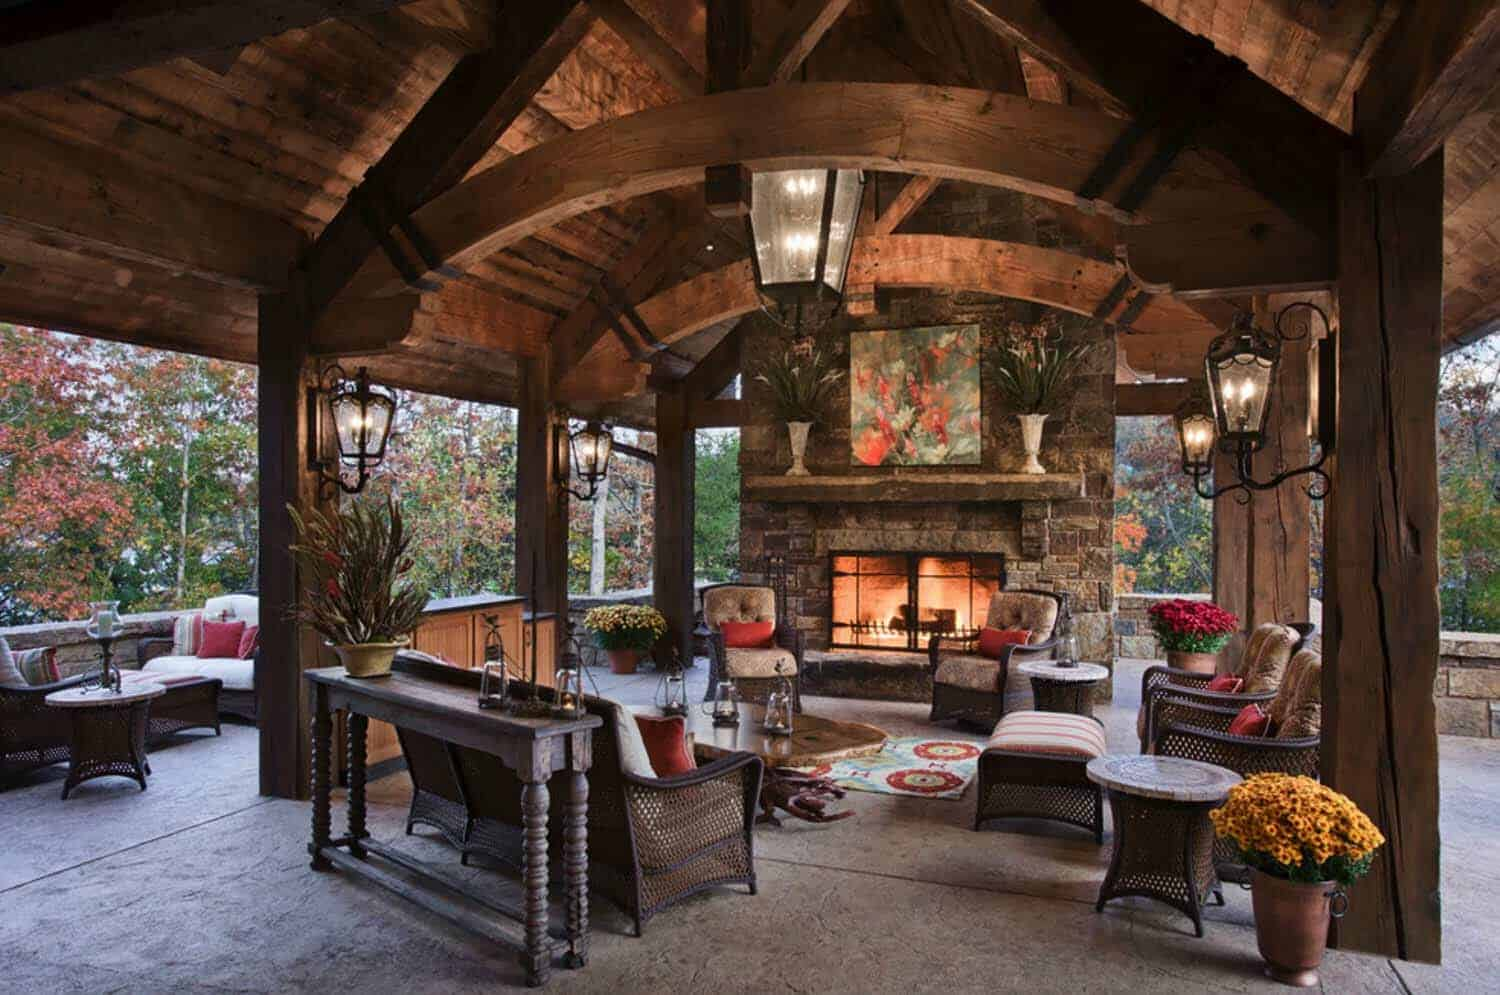 30+ Irresistible outdoor fireplace ideas that will leave ... on Small Outdoor Fireplace Ideas id=96124